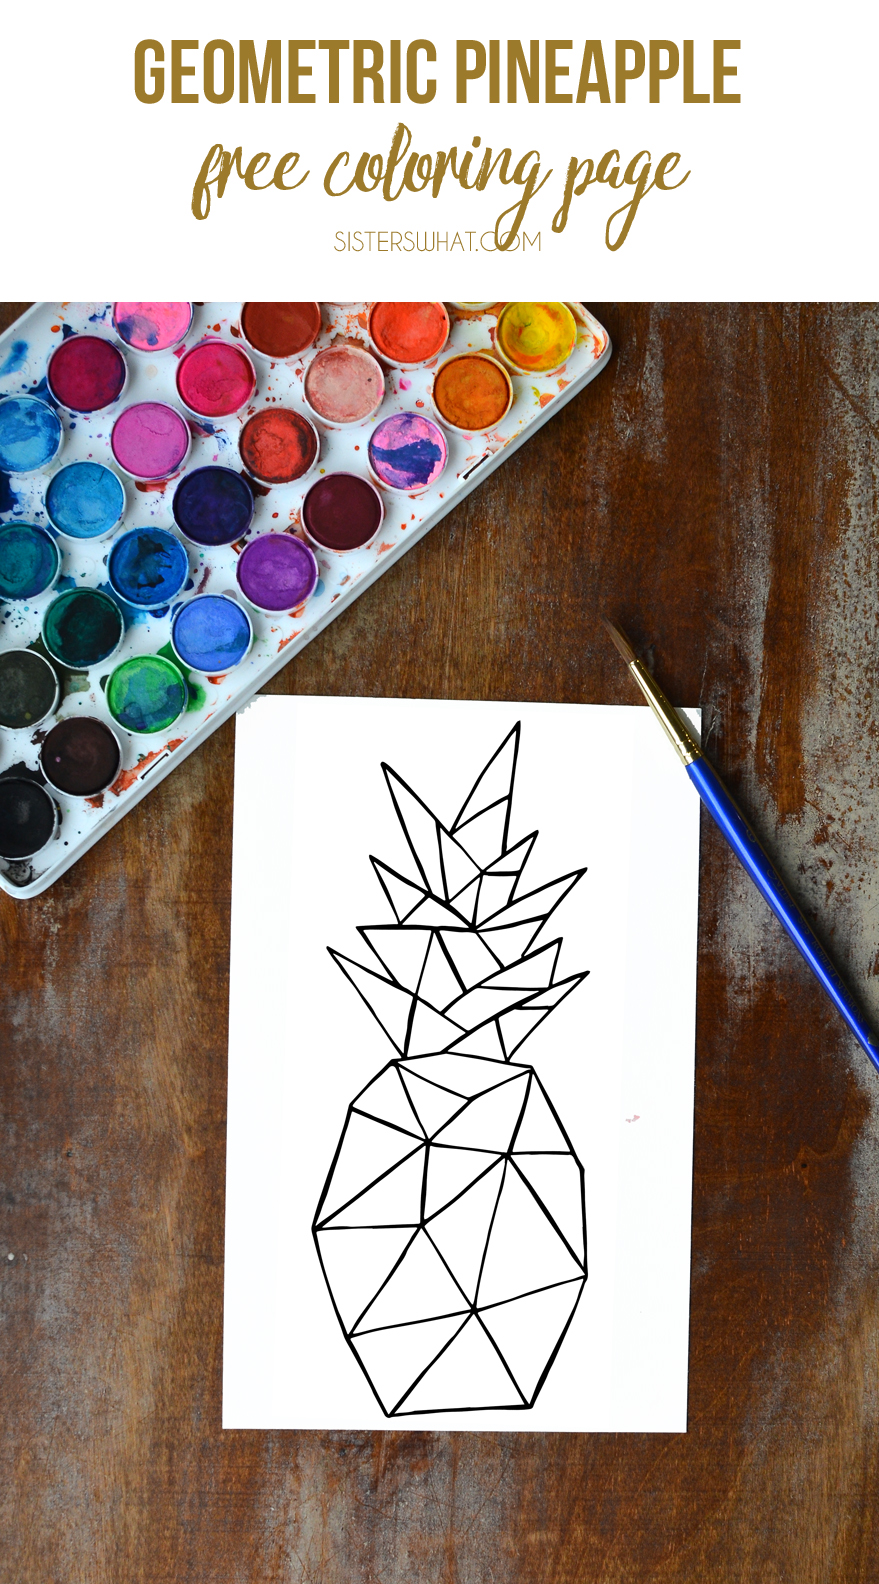 Geometric pineapple free coloring page